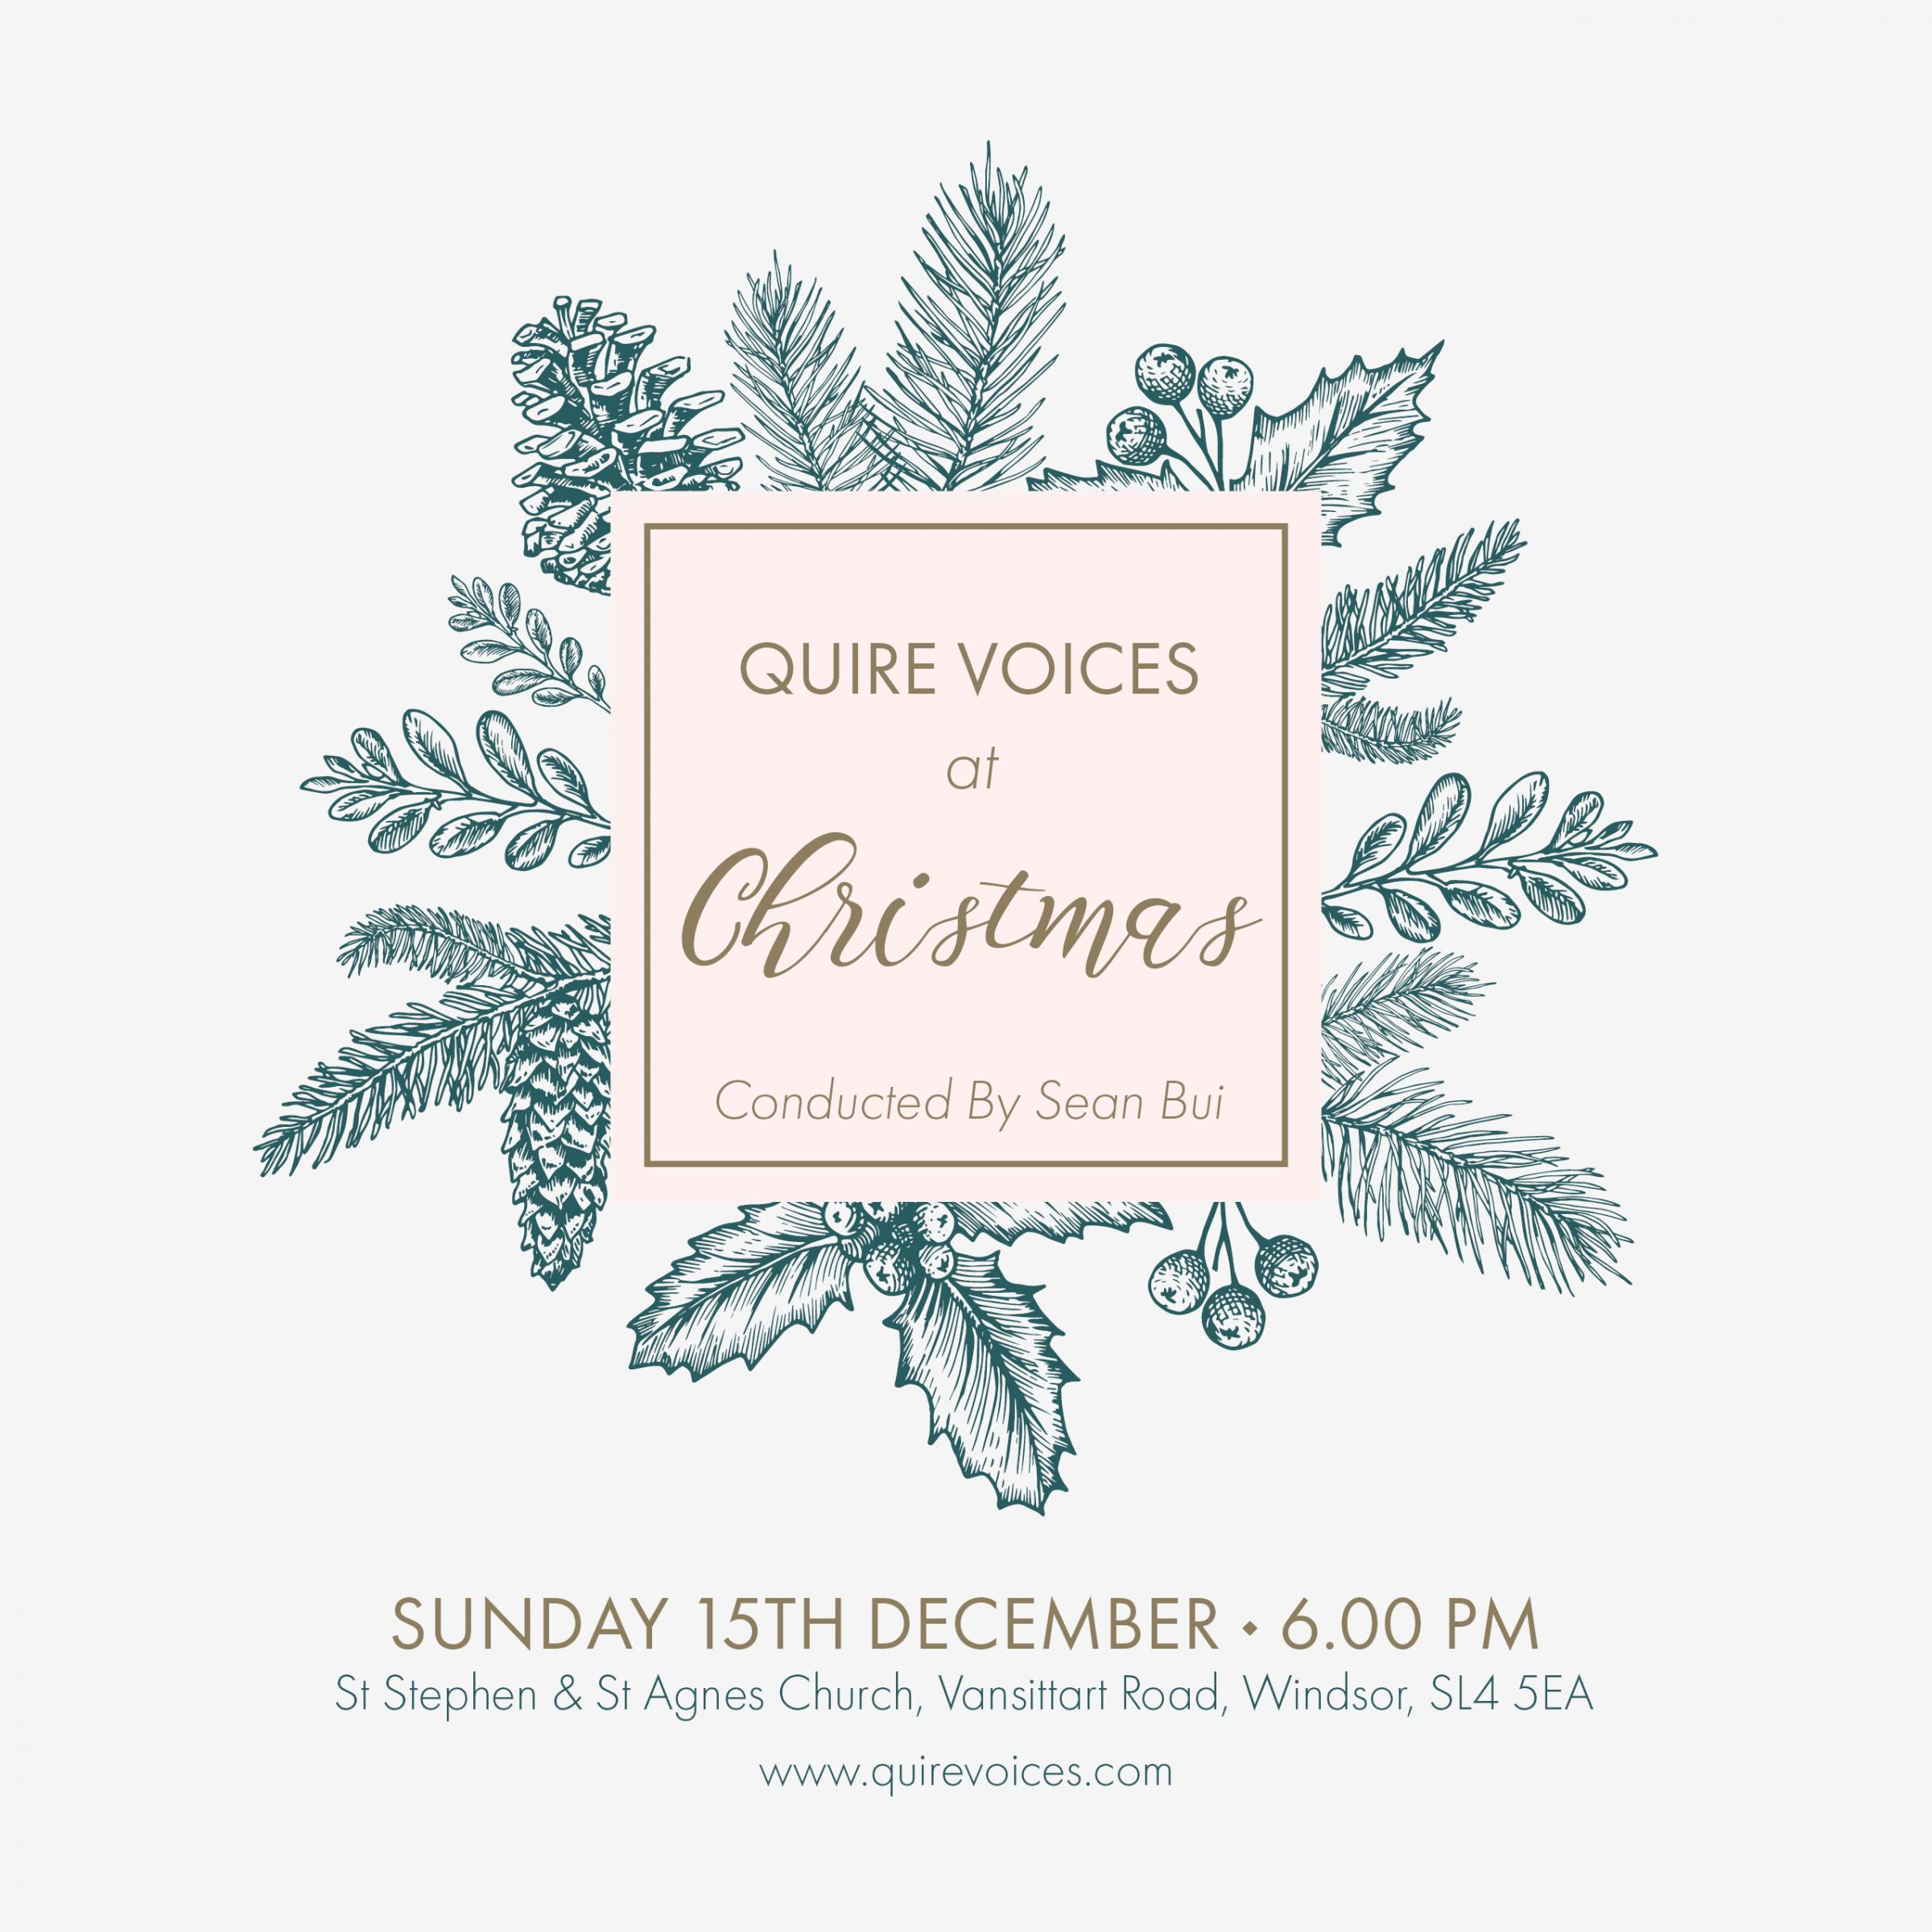 Quire Voices at Christmas